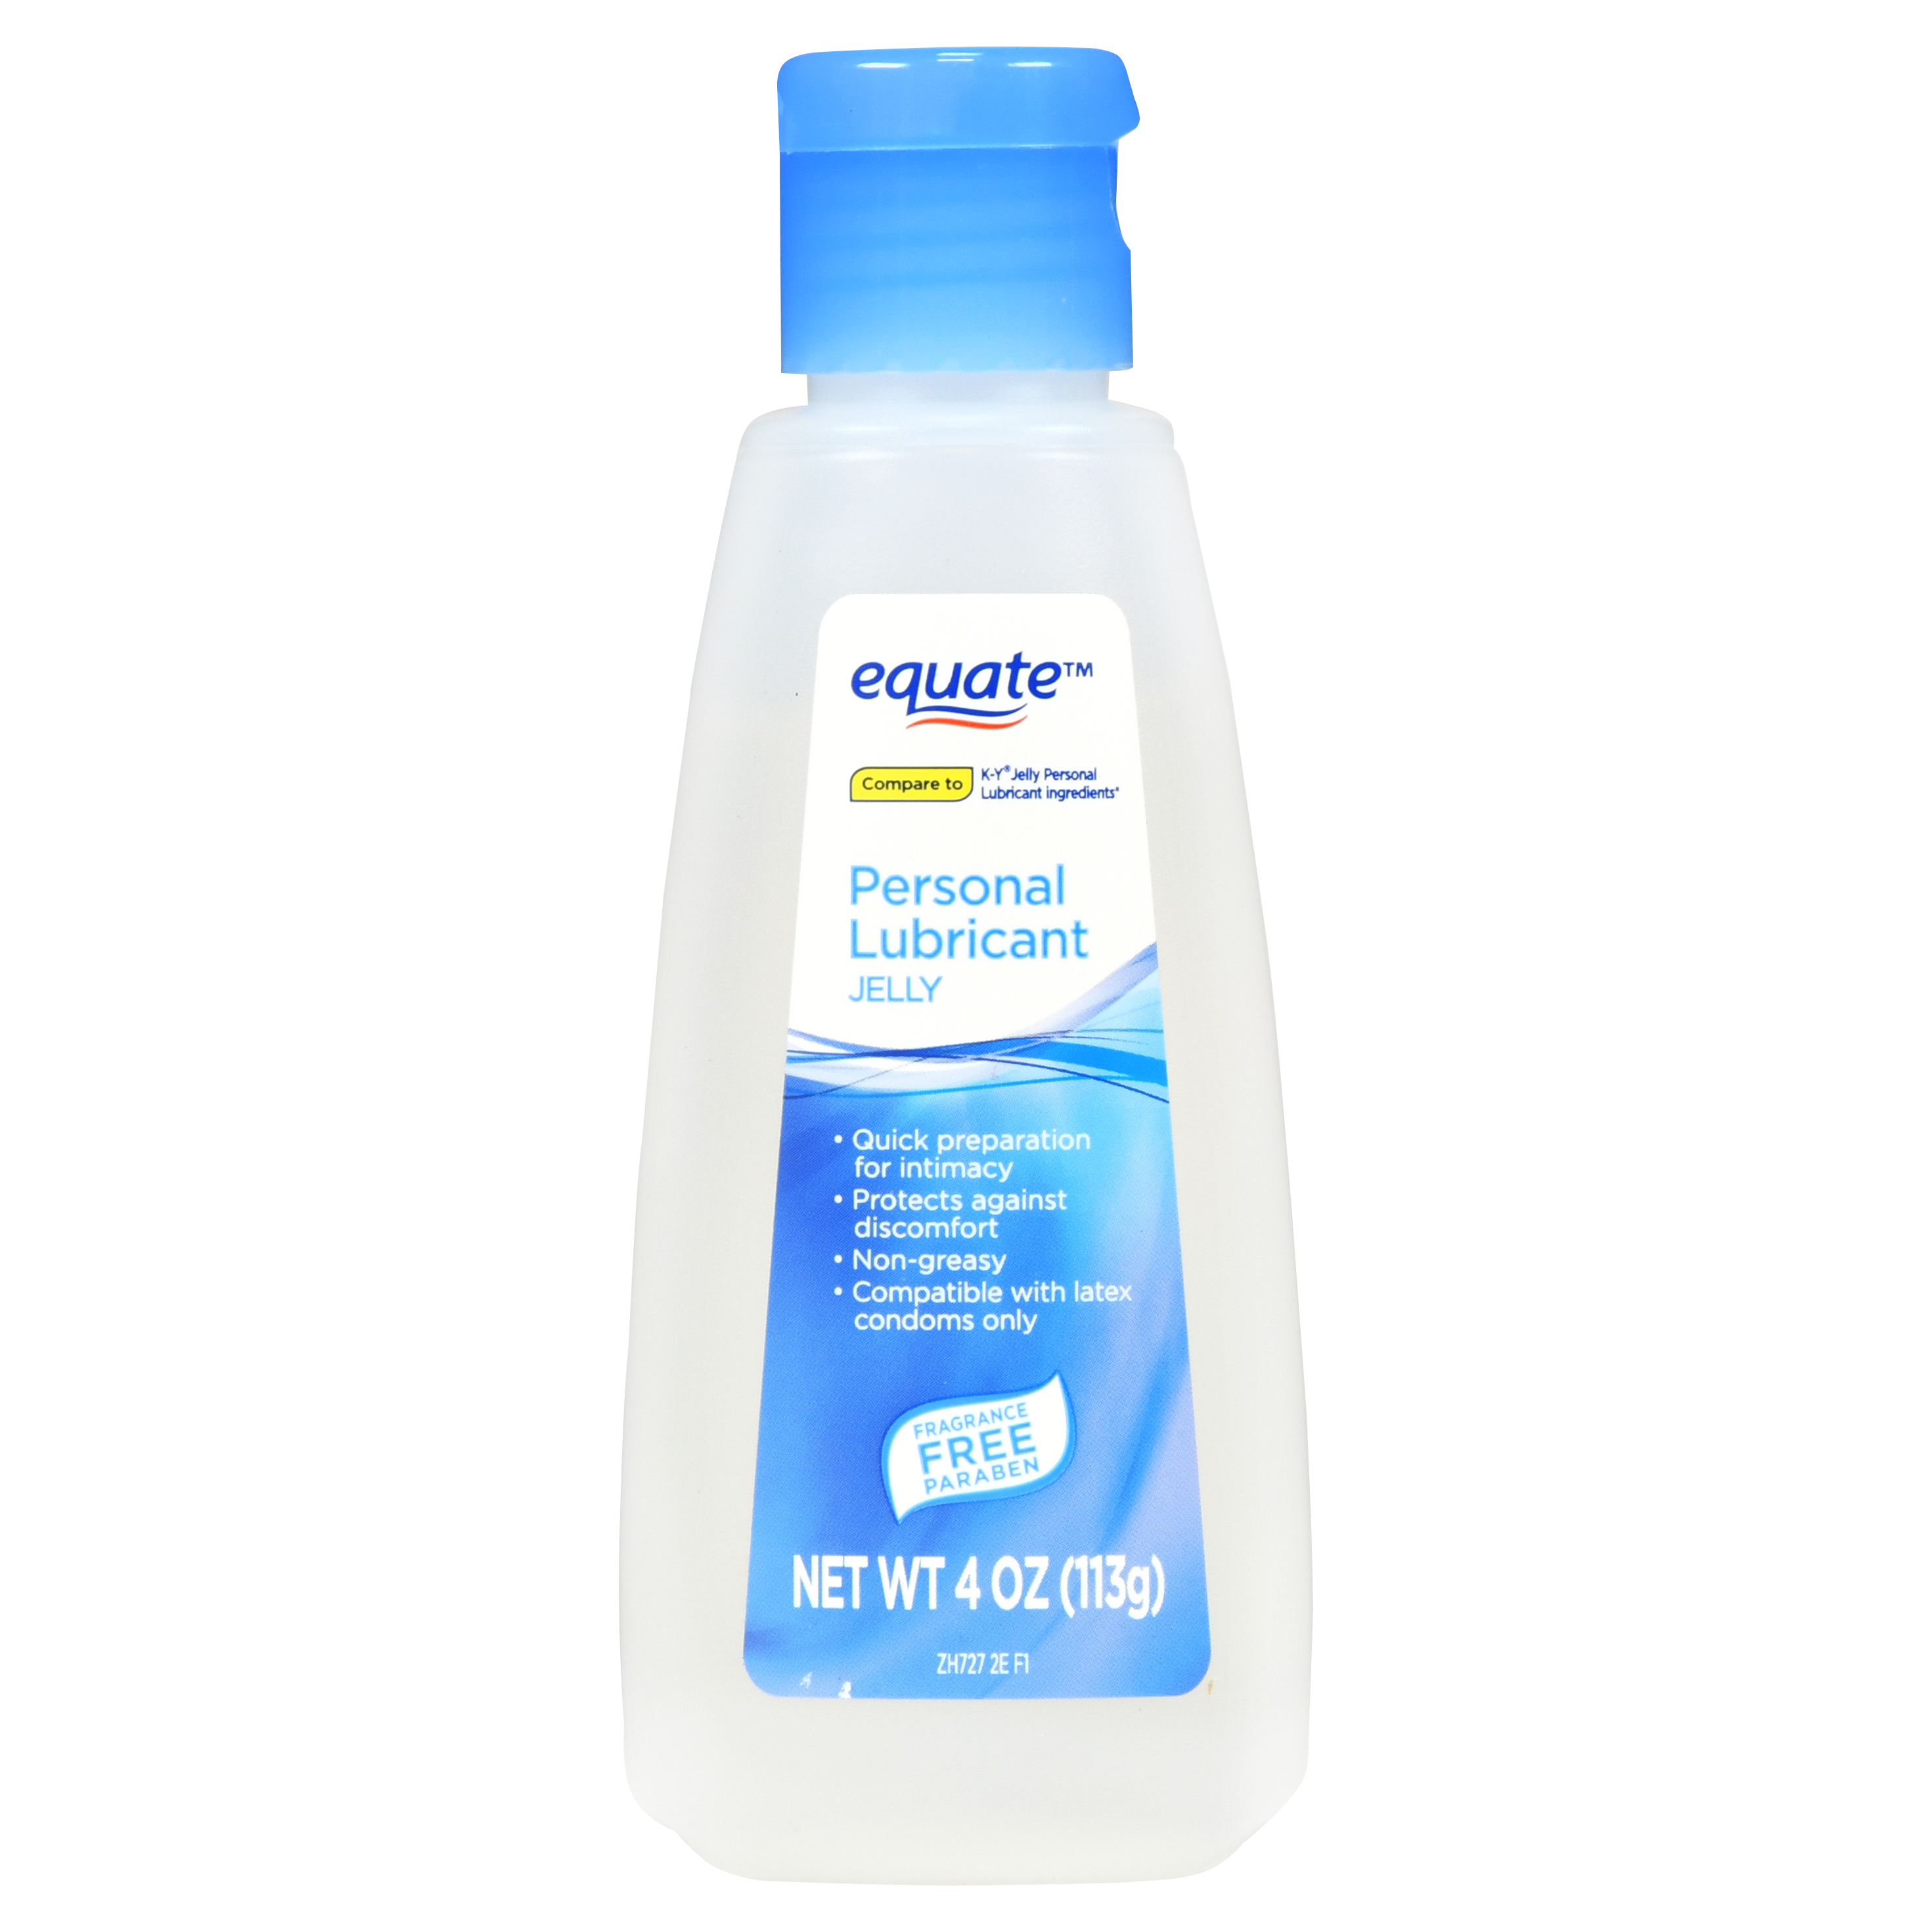 Equate Personal Lubricant Jelly, 4 Oz